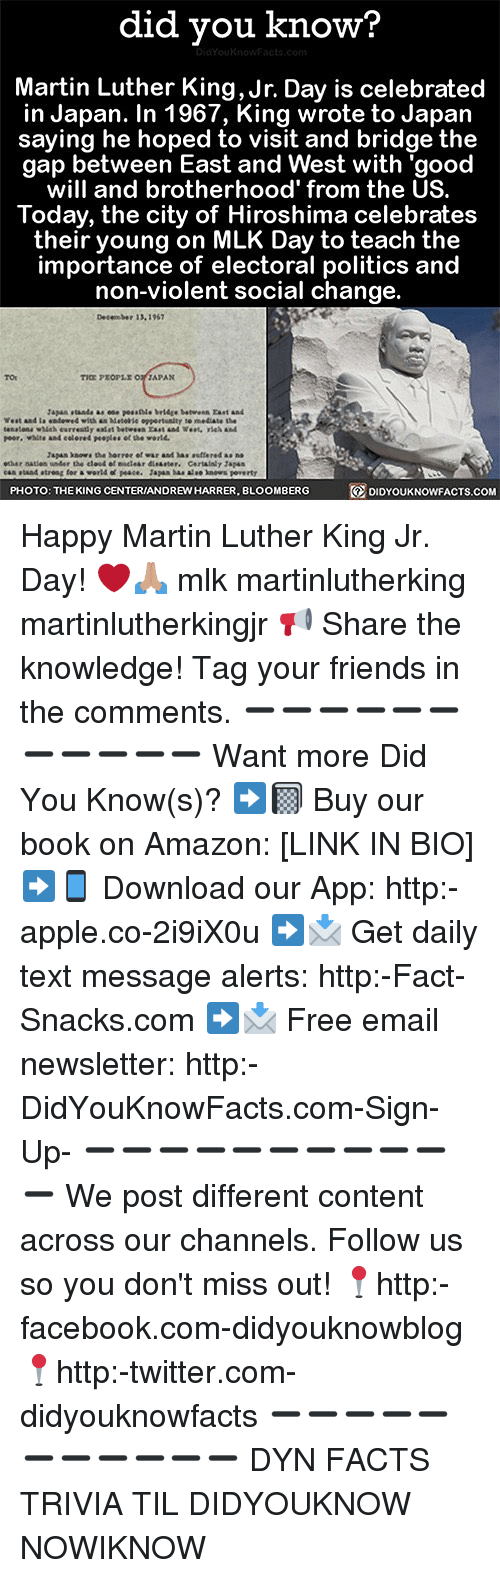 Amazon, Apple, and Facebook: did you know?  Martin Luther King,Jr. Day is celebrated  in Japan. In 1967, King wrote to Japan  saying he hoped to visit and bridge the  gap between East and West with 'good  will and brotherhood' from the US.  Today, the city of Hiroshima celebrates  their young on MLK Day to teach the  importance of electoral politics and  non-violent social change.  December 13.1967  TO  Tapan stands as ose pessle brlige betwen Fast and  West and la entered with as Matoie oppertunlty te mediate the  peer, whlte and eelored peoples of the world  Japas kao.. the barrer et wur aad ha·suffered as no  cas staad atreng tor a world of peace. Japen asaleo ns poverty  PHOTO: THEKING CENTERIANDREW HARRER, BLOOMBERG  DIDYOUKNOWFACTS.coM Happy Martin Luther King Jr. Day! ❤️🙏🏽 mlk martinlutherking martinlutherkingjr 📢 Share the knowledge! Tag your friends in the comments. ➖➖➖➖➖➖➖➖➖➖➖ Want more Did You Know(s)? ➡📓 Buy our book on Amazon: [LINK IN BIO] ➡📱 Download our App: http:-apple.co-2i9iX0u ➡📩 Get daily text message alerts: http:-Fact-Snacks.com ➡📩 Free email newsletter: http:-DidYouKnowFacts.com-Sign-Up- ➖➖➖➖➖➖➖➖➖➖➖ We post different content across our channels. Follow us so you don't miss out! 📍http:-facebook.com-didyouknowblog 📍http:-twitter.com-didyouknowfacts ➖➖➖➖➖➖➖➖➖➖➖ DYN FACTS TRIVIA TIL DIDYOUKNOW NOWIKNOW